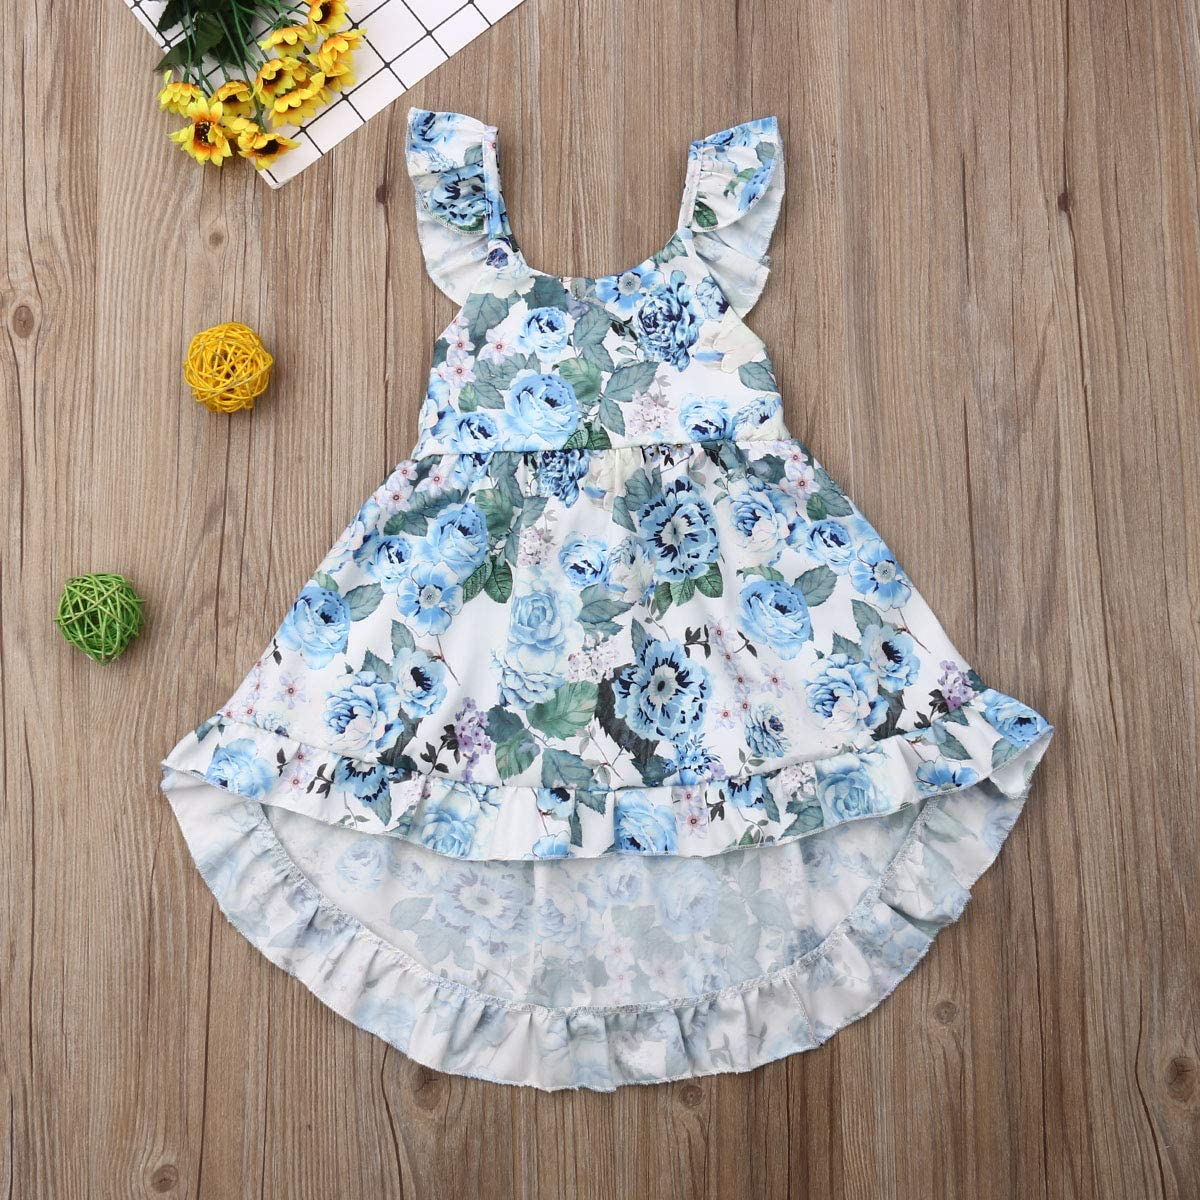 Toddler Baby Girls Summer Outfit Clothes Fly Sleeve Vintage Floral Print Ruffle Rim Skirt Sundress Boho Dress